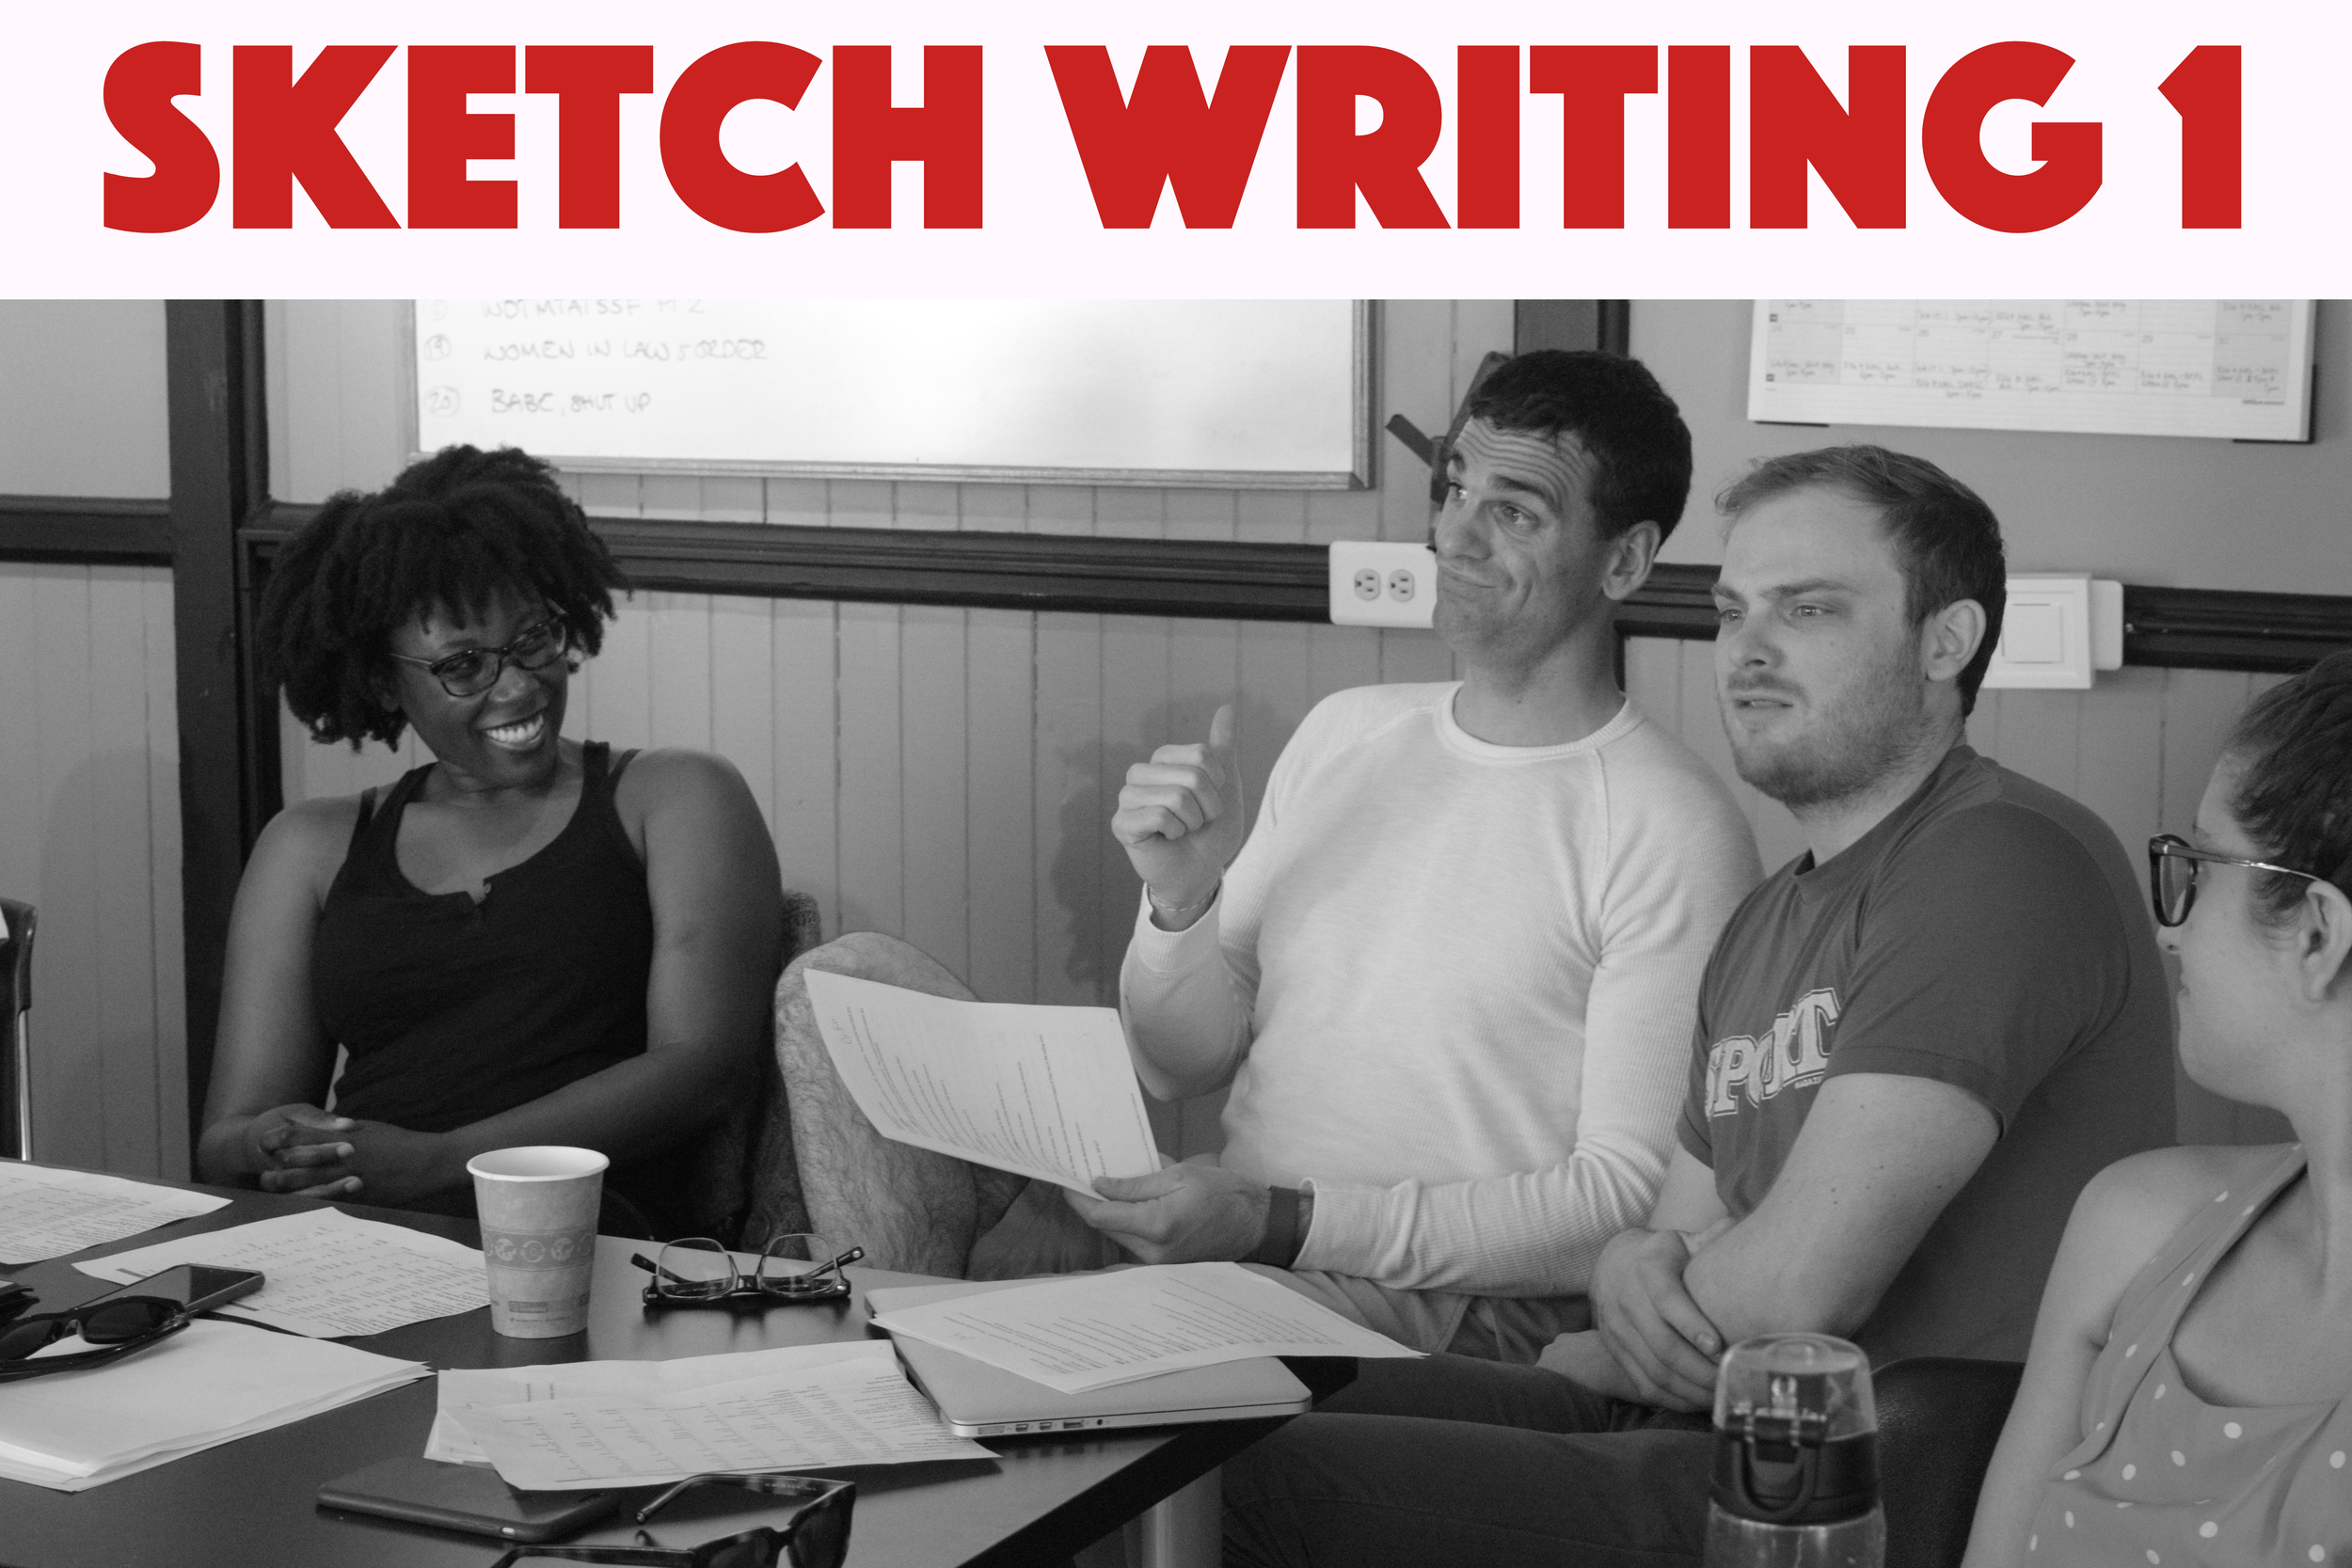 Learn the fundamentals of sketch comedy writing and develop your comedic voice in a fun, supportive environment. Sketch Writing 1 is open to all experience levels.